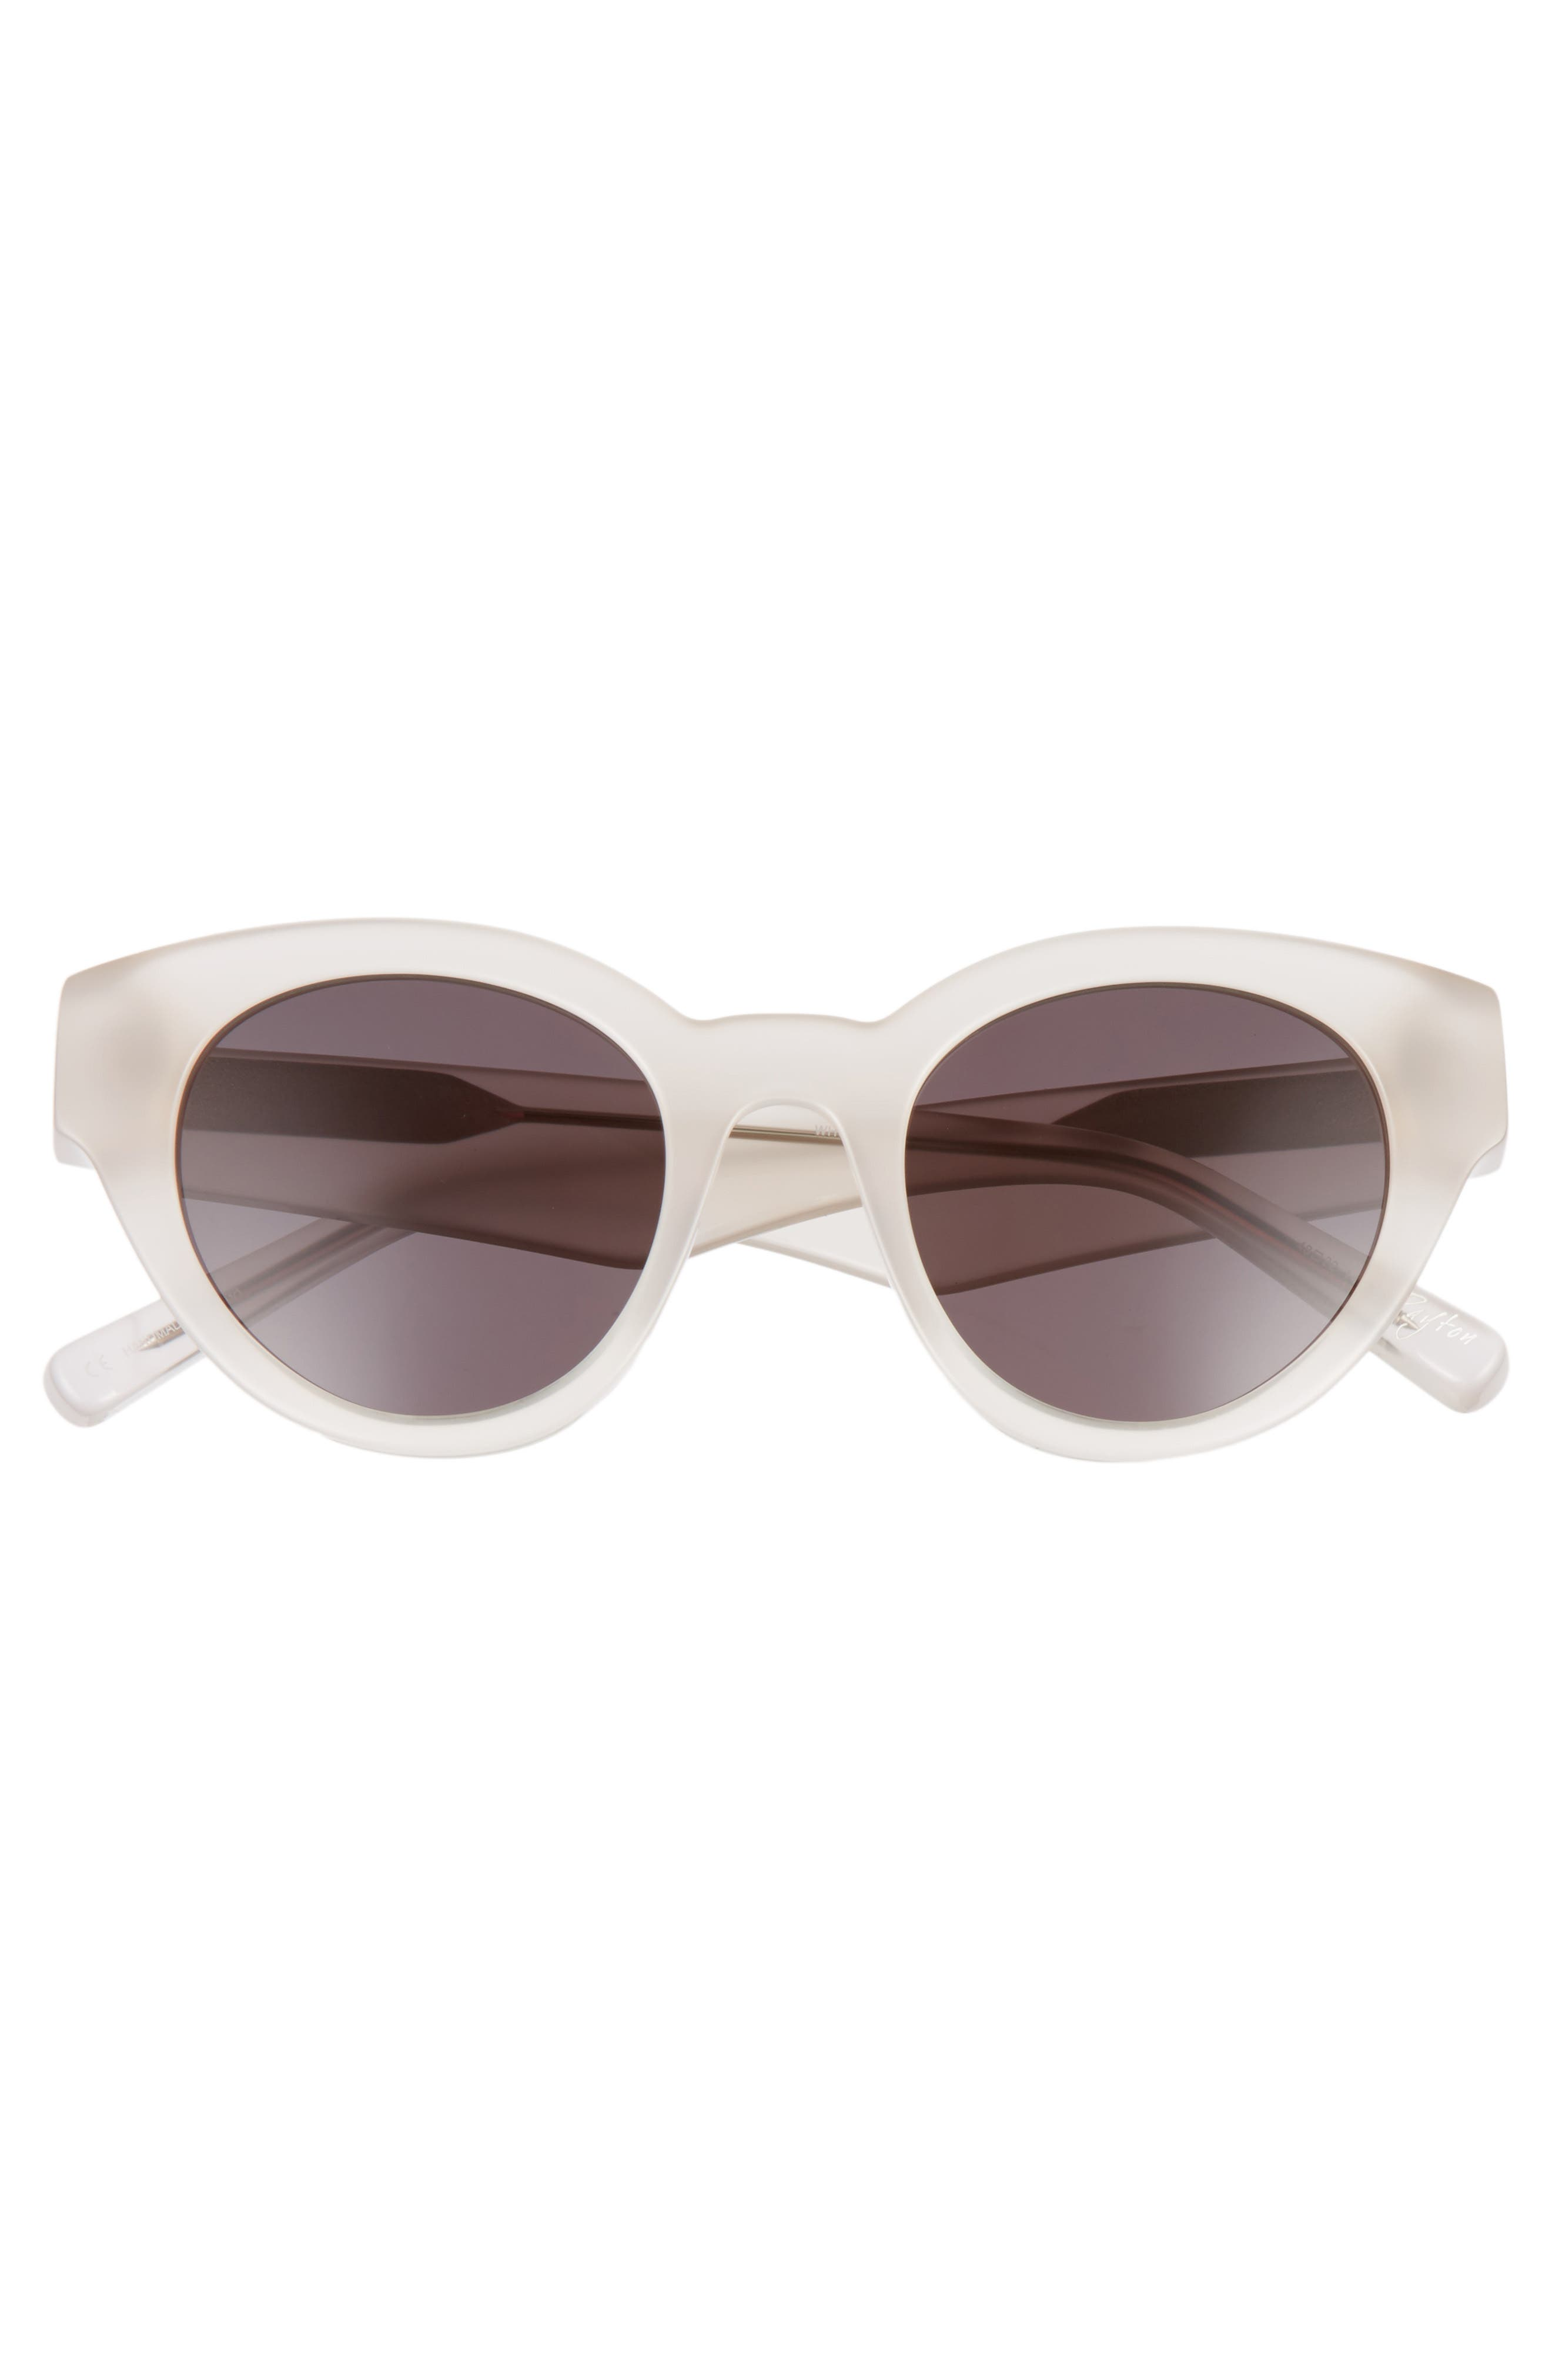 Alternate Image 3  - Elizabeth and James Payton 48mm Cat Eye Sunglasses